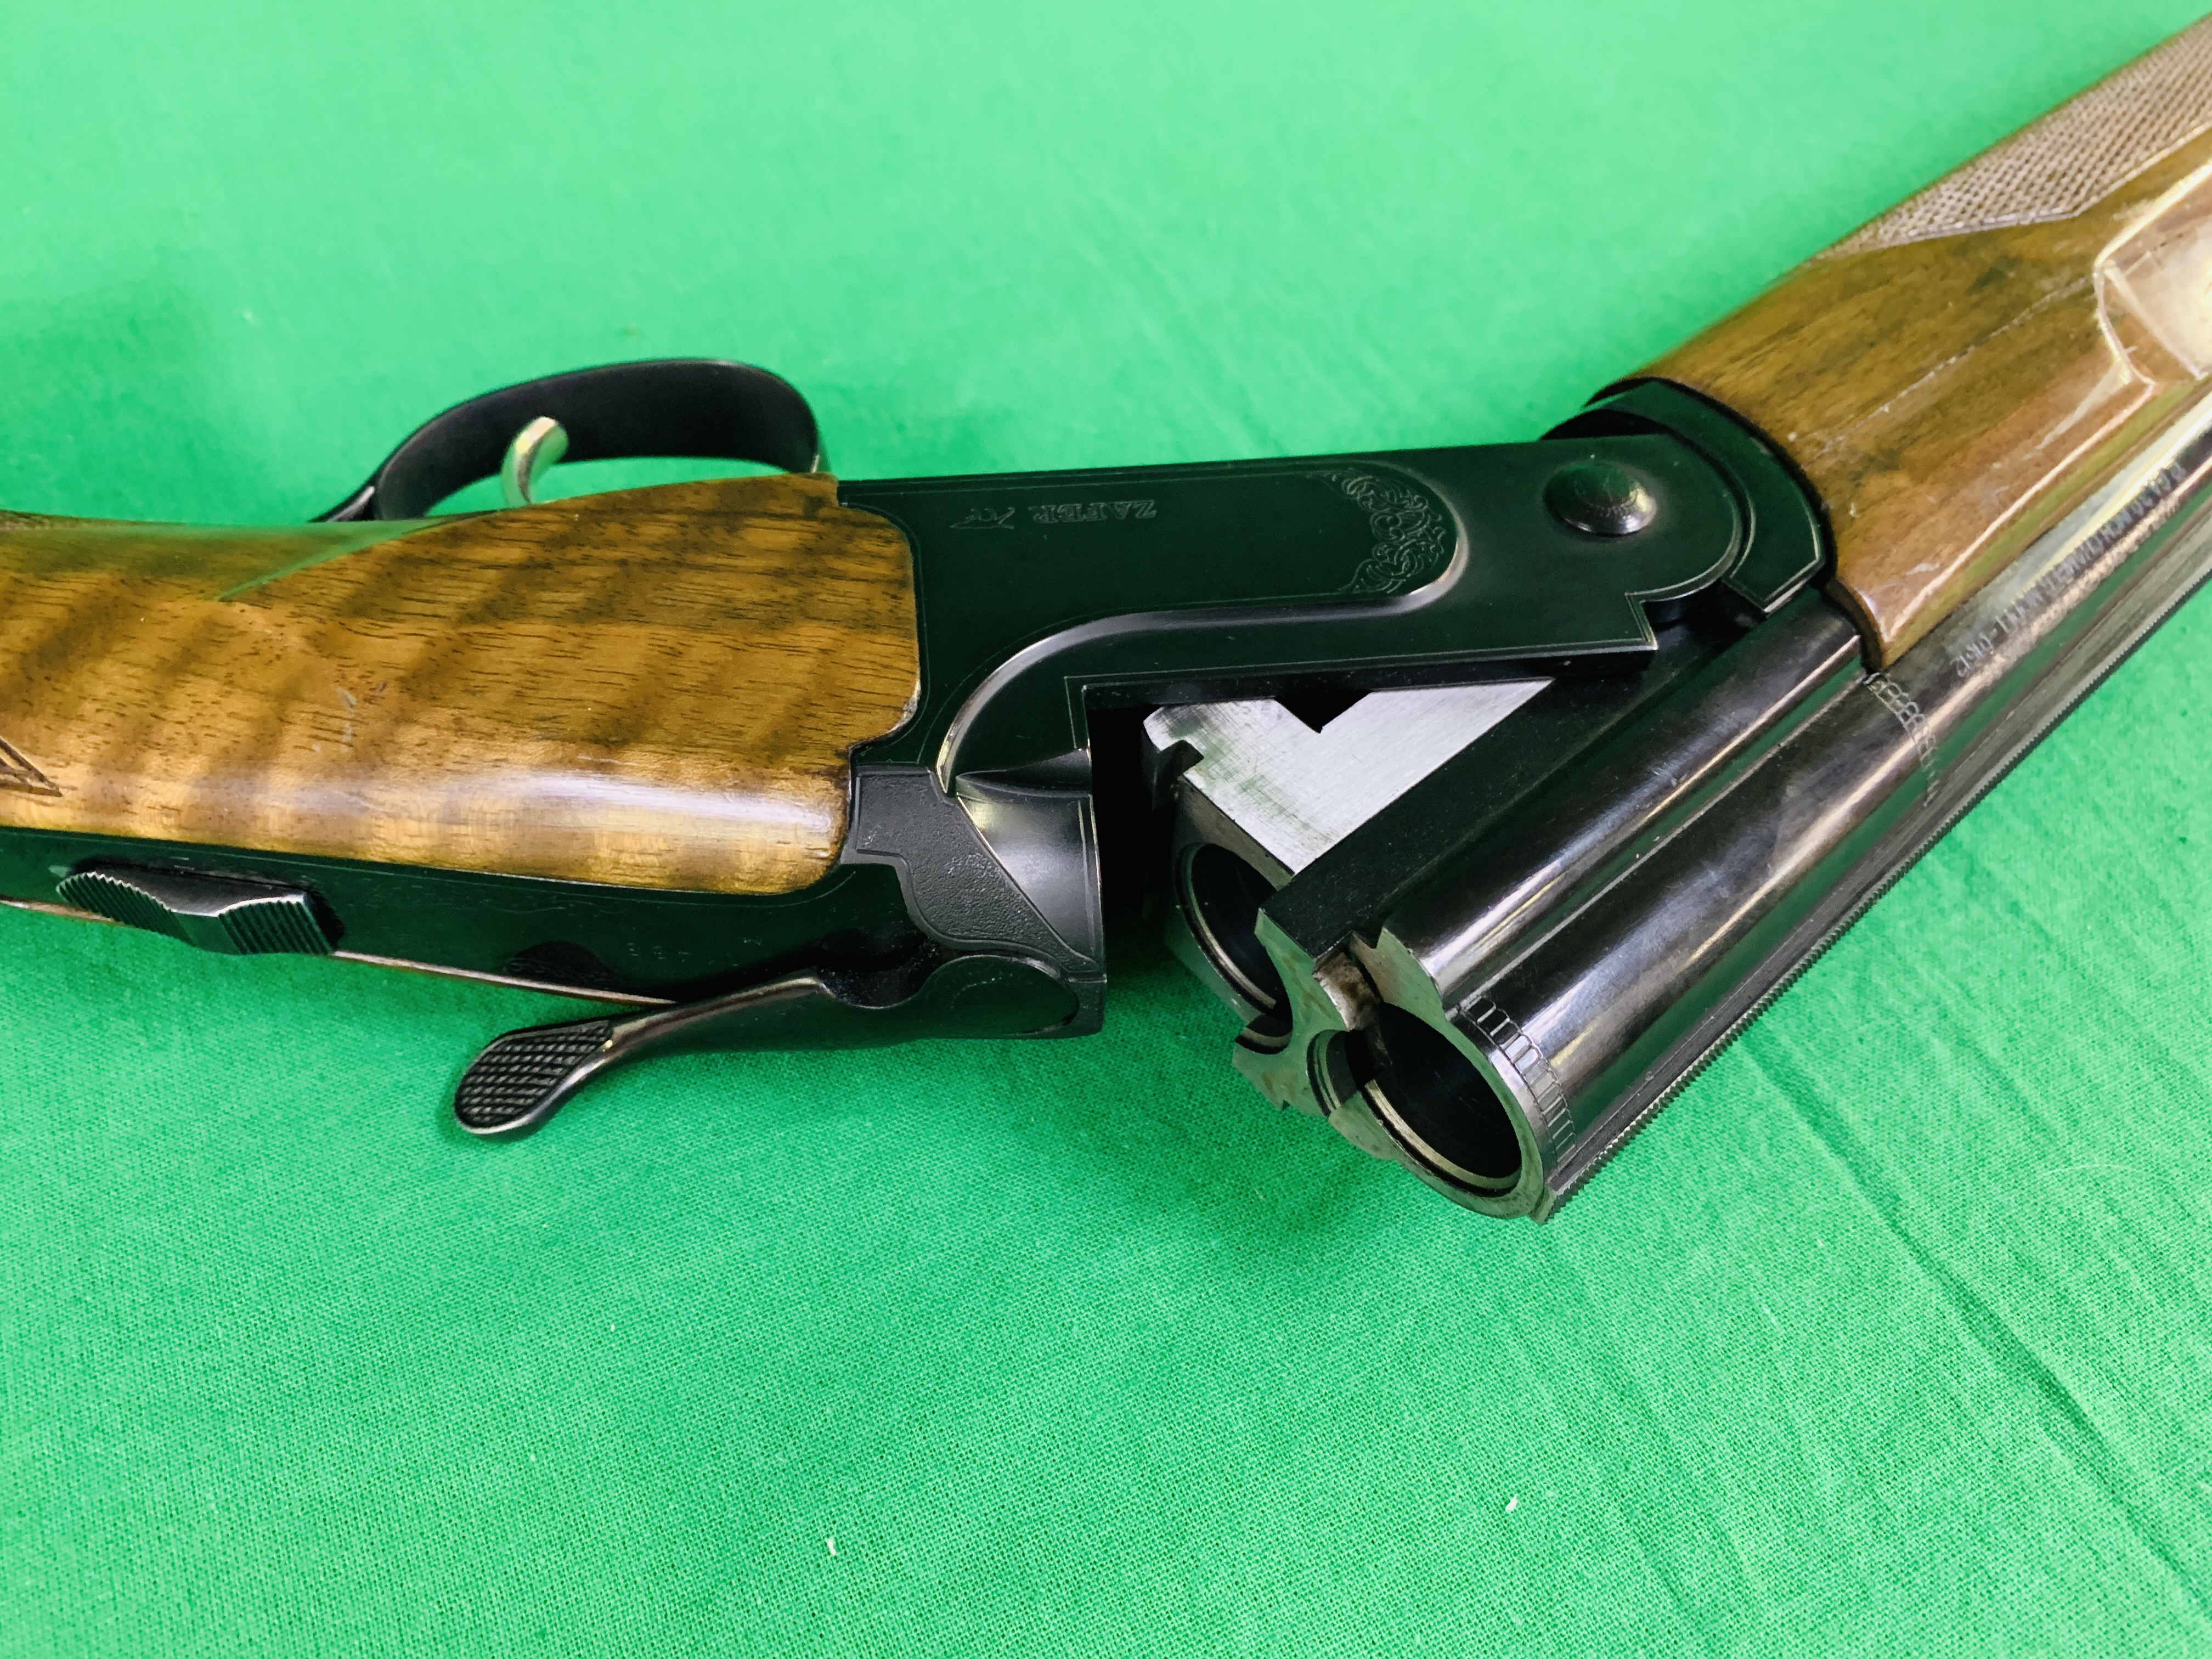 ZAFER MODEL 01612 12 BORE OVER AND UNDER SHOTGUN # 01483, SELECTABLE SINGLE TRIGGER, NON EJECTOR, - Image 8 of 8